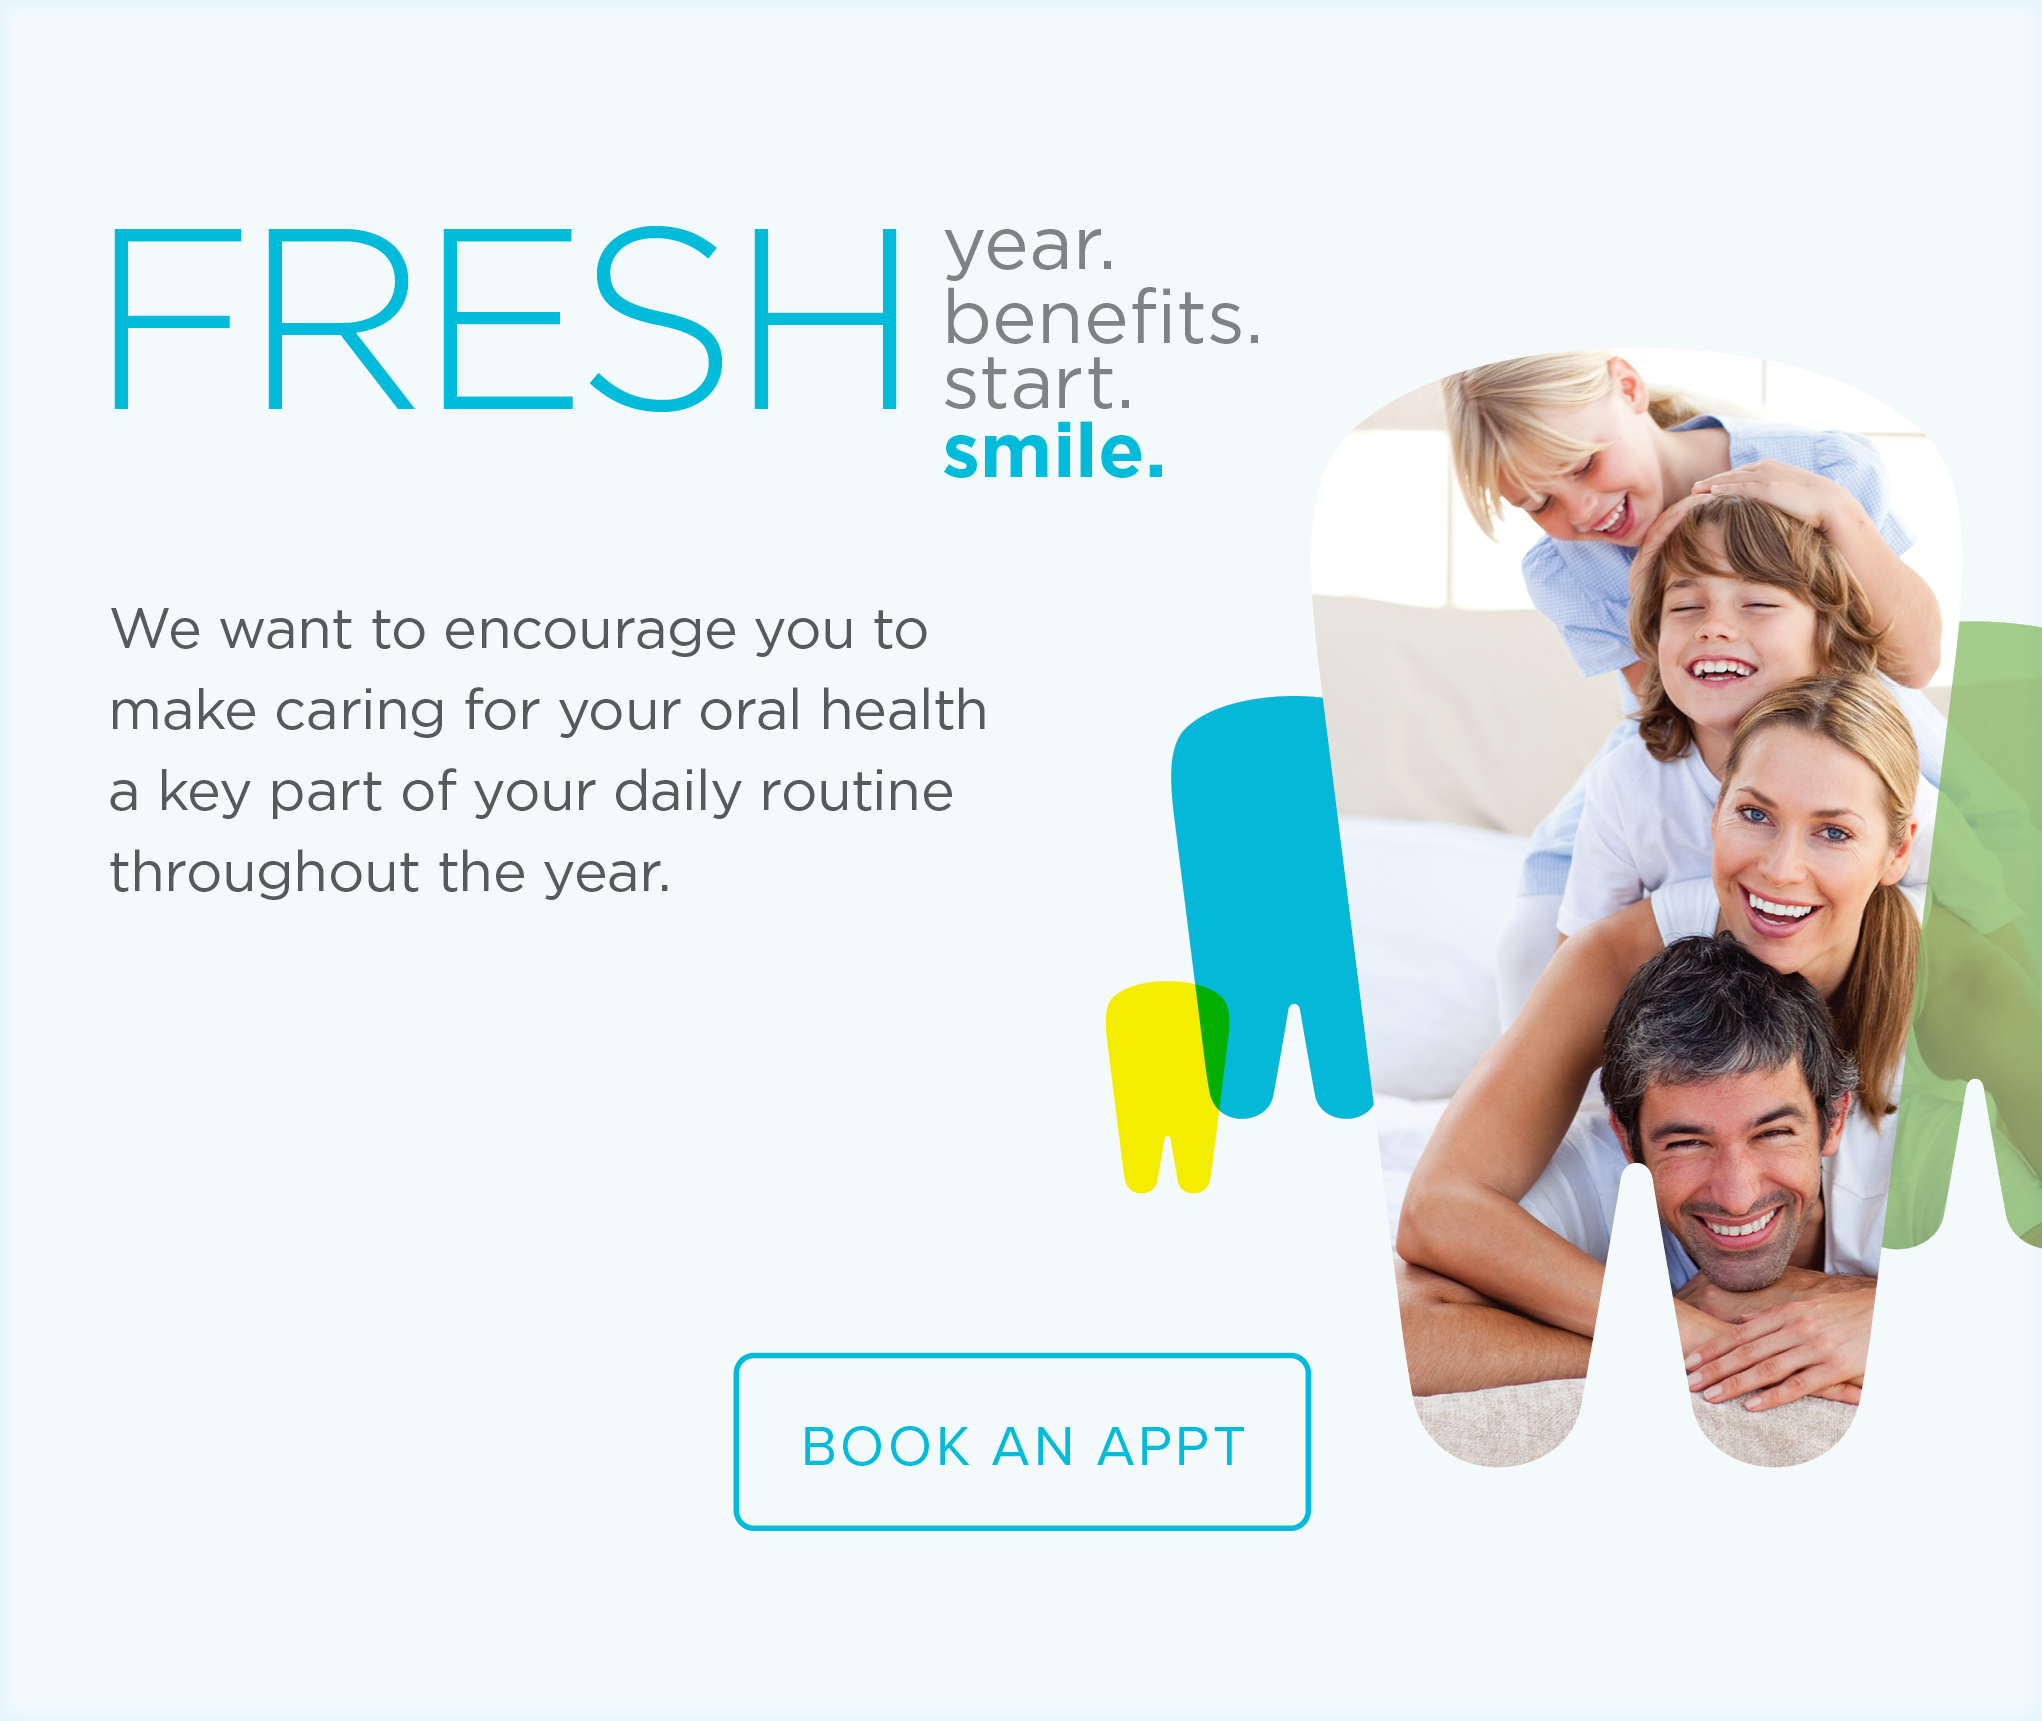 Claremont Modern Dentistry - Make the Most of Your Benefits